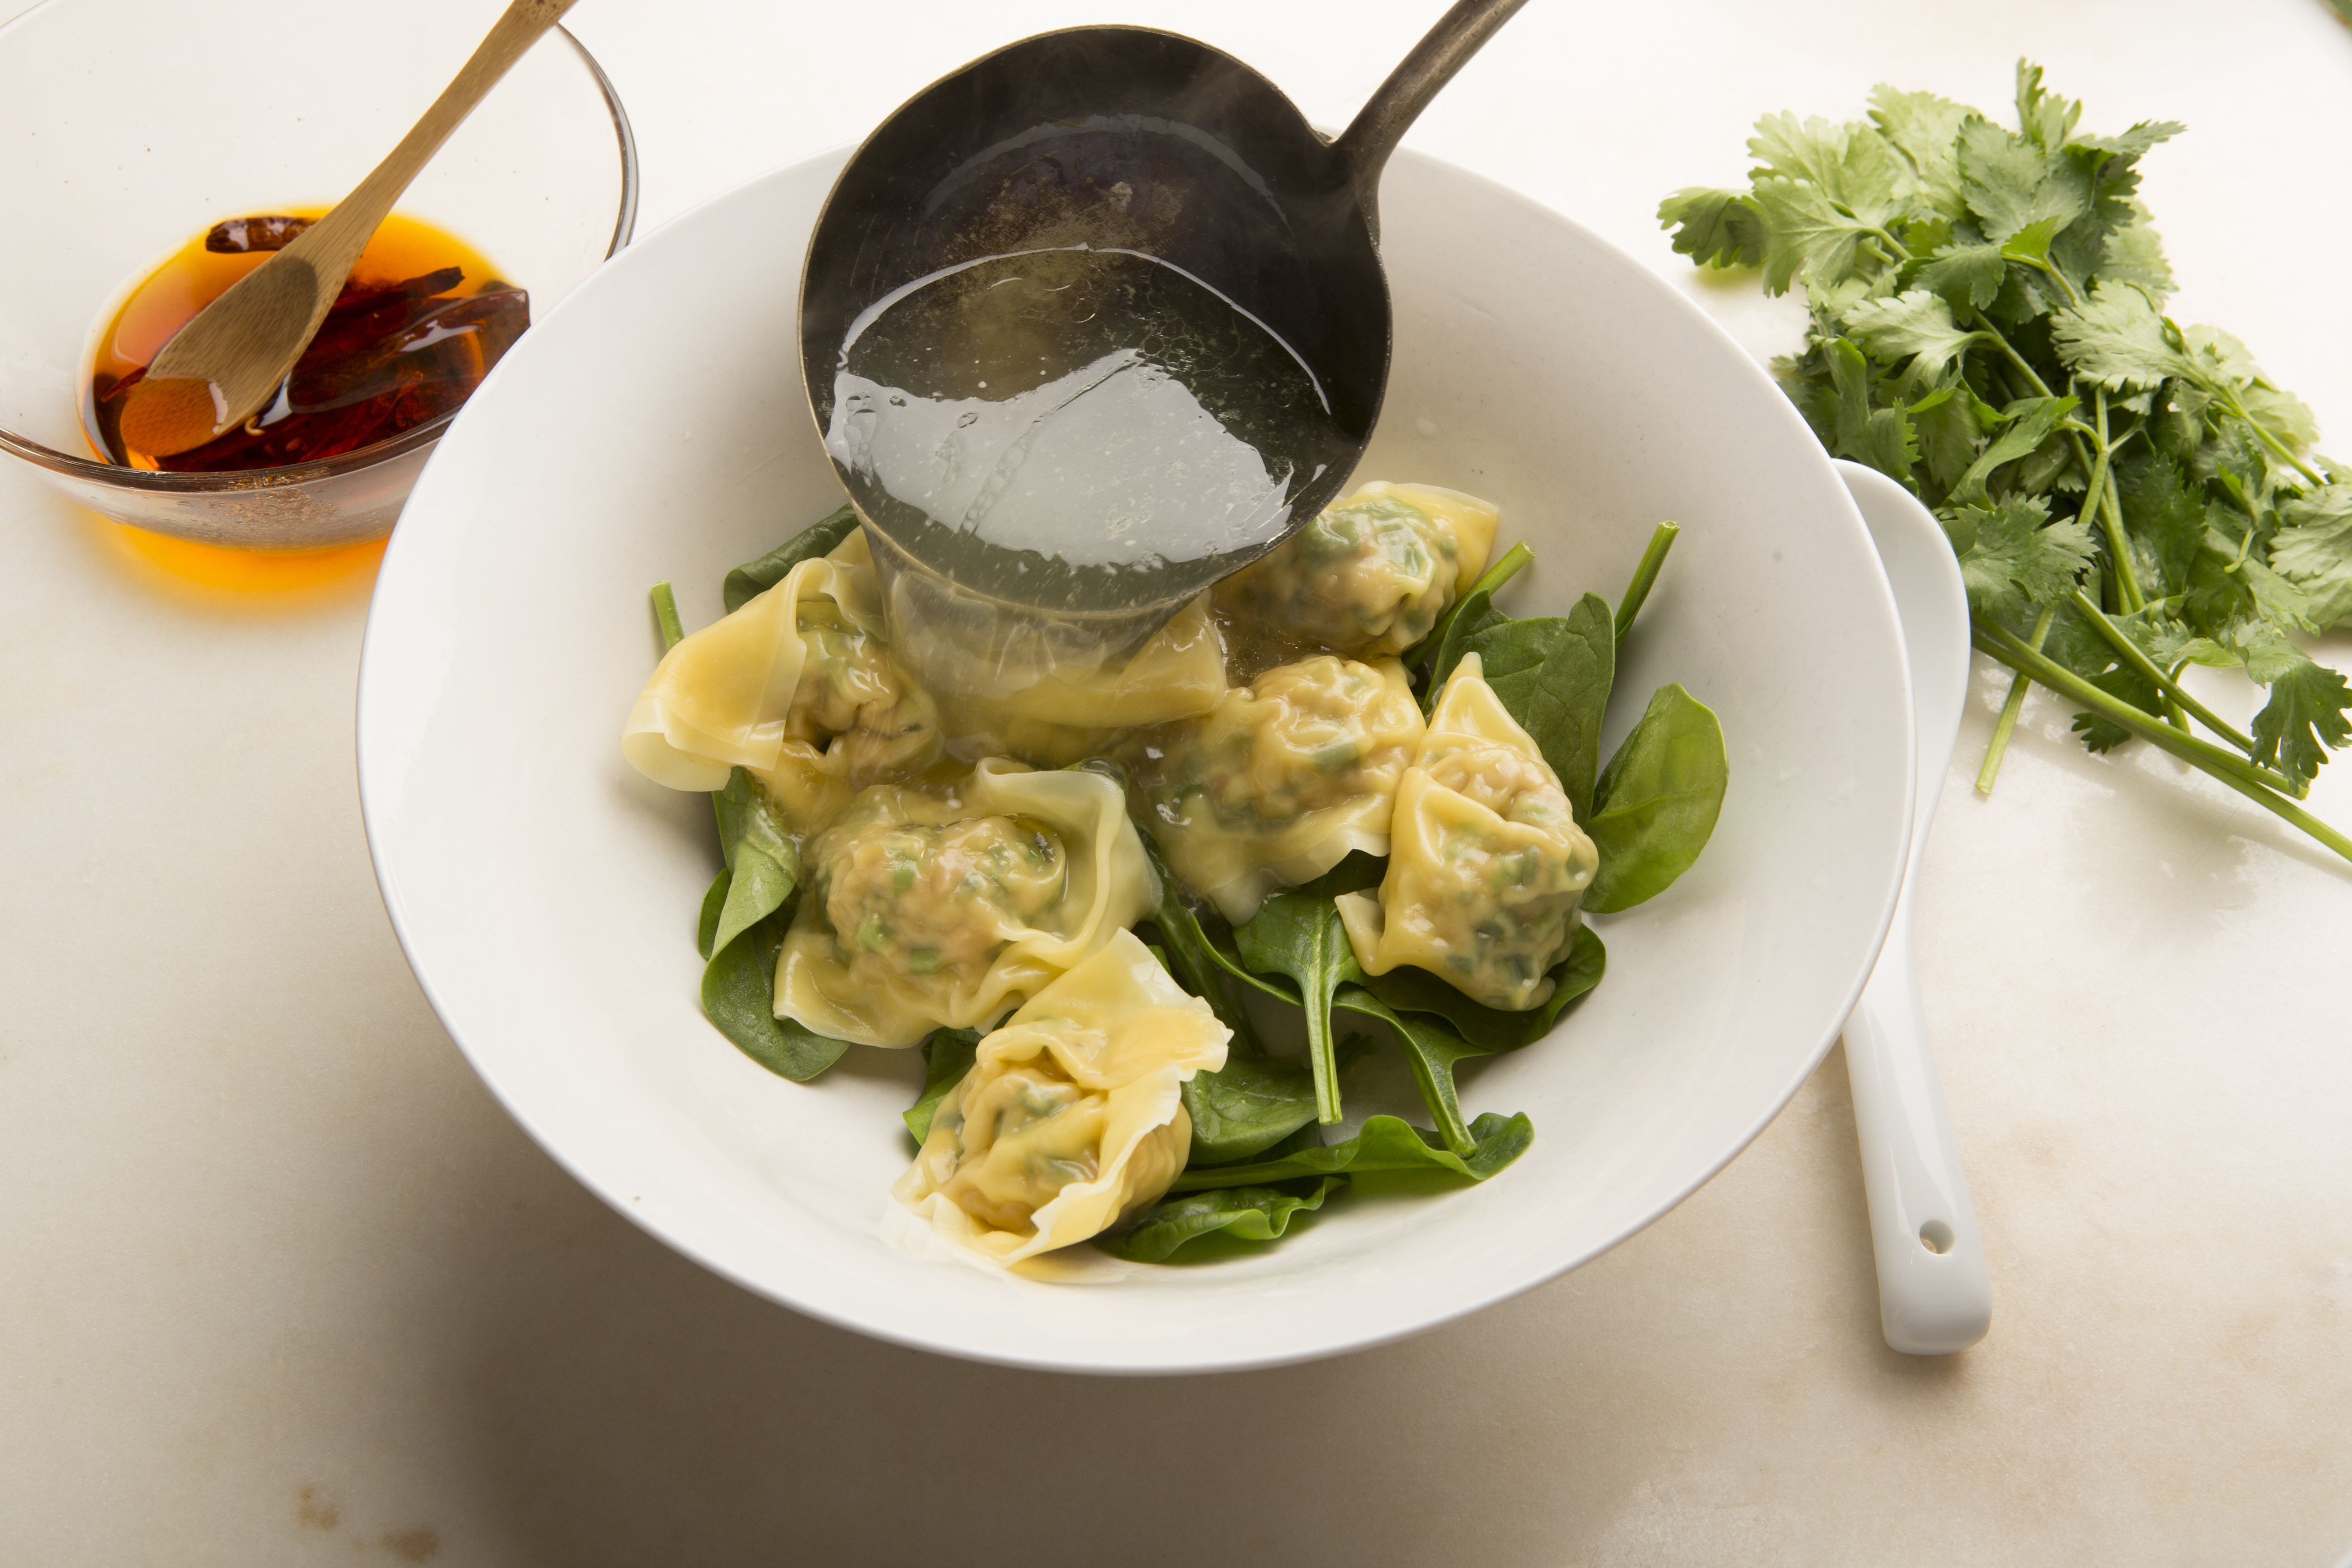 Serve homemade won tons with a clear broth, spinach, cilantro and hot pepper oil.